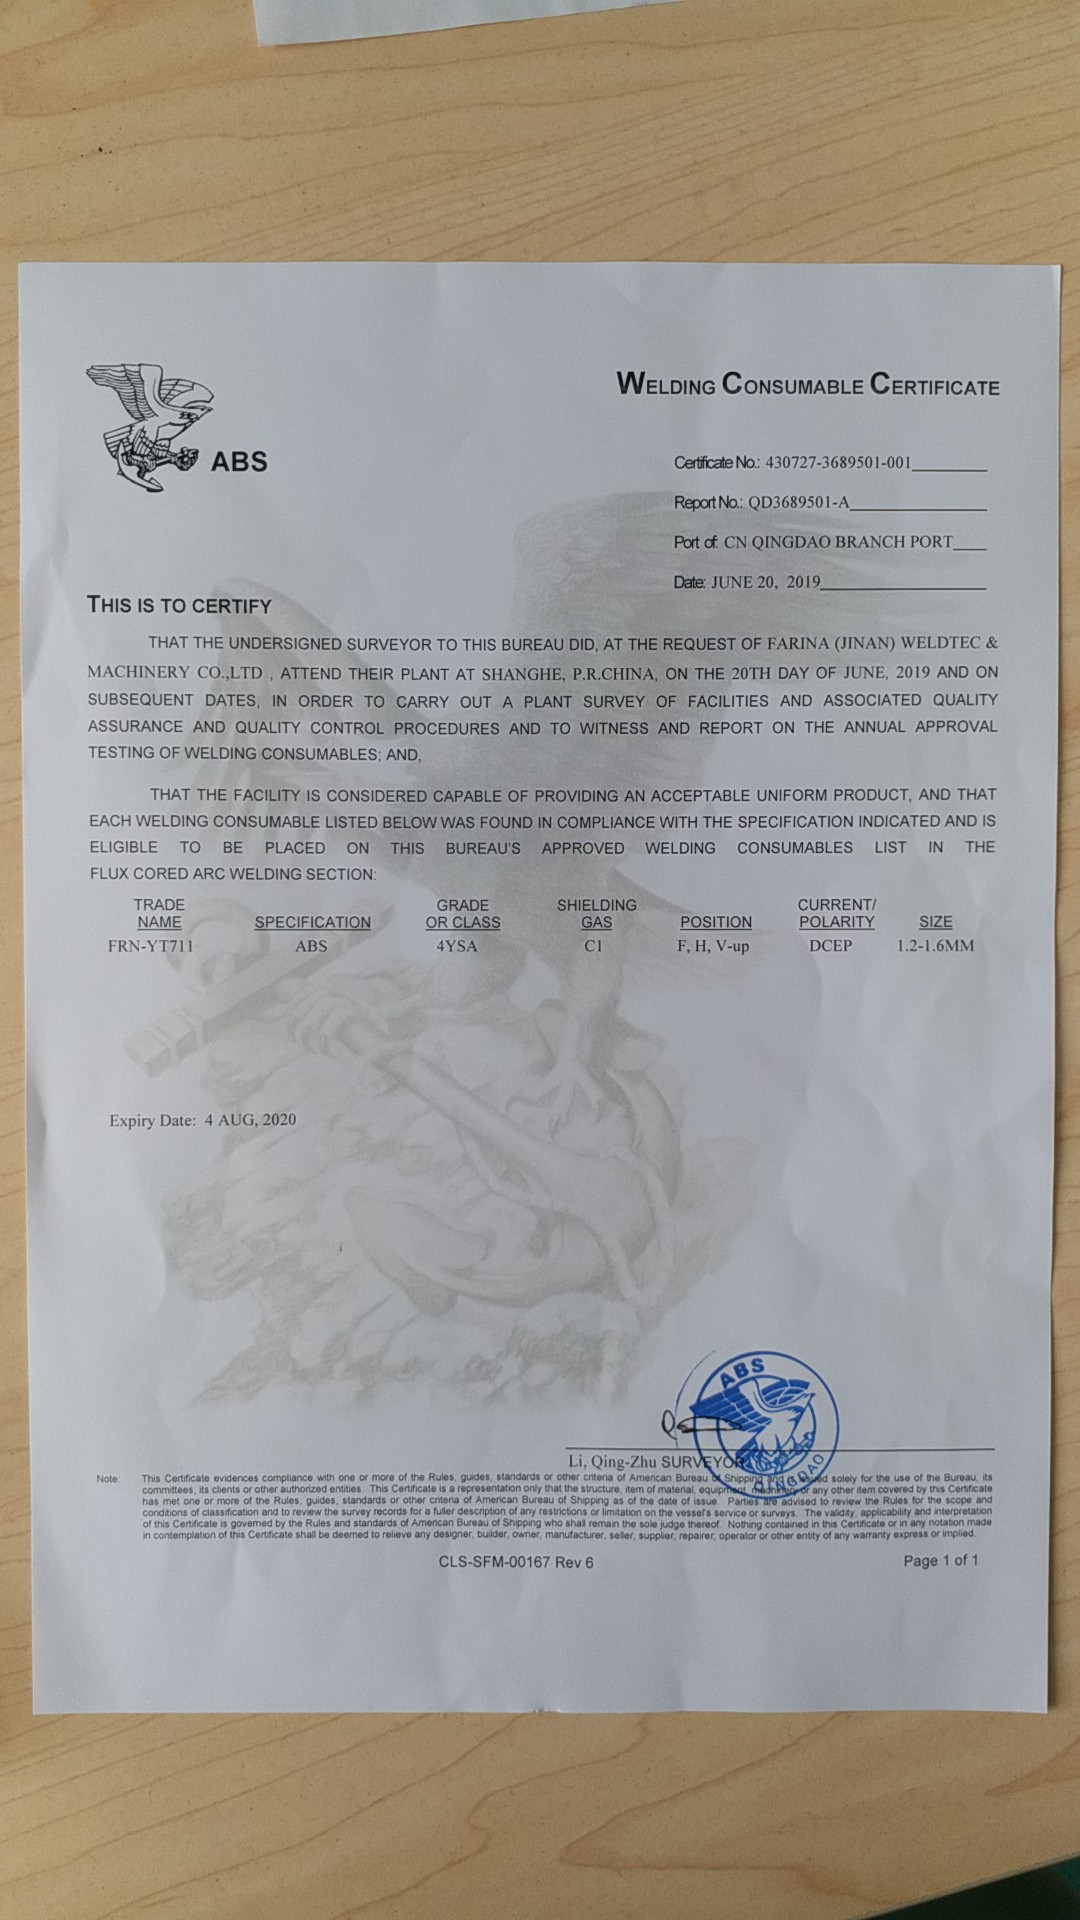 Our new ABS Certificate from USA